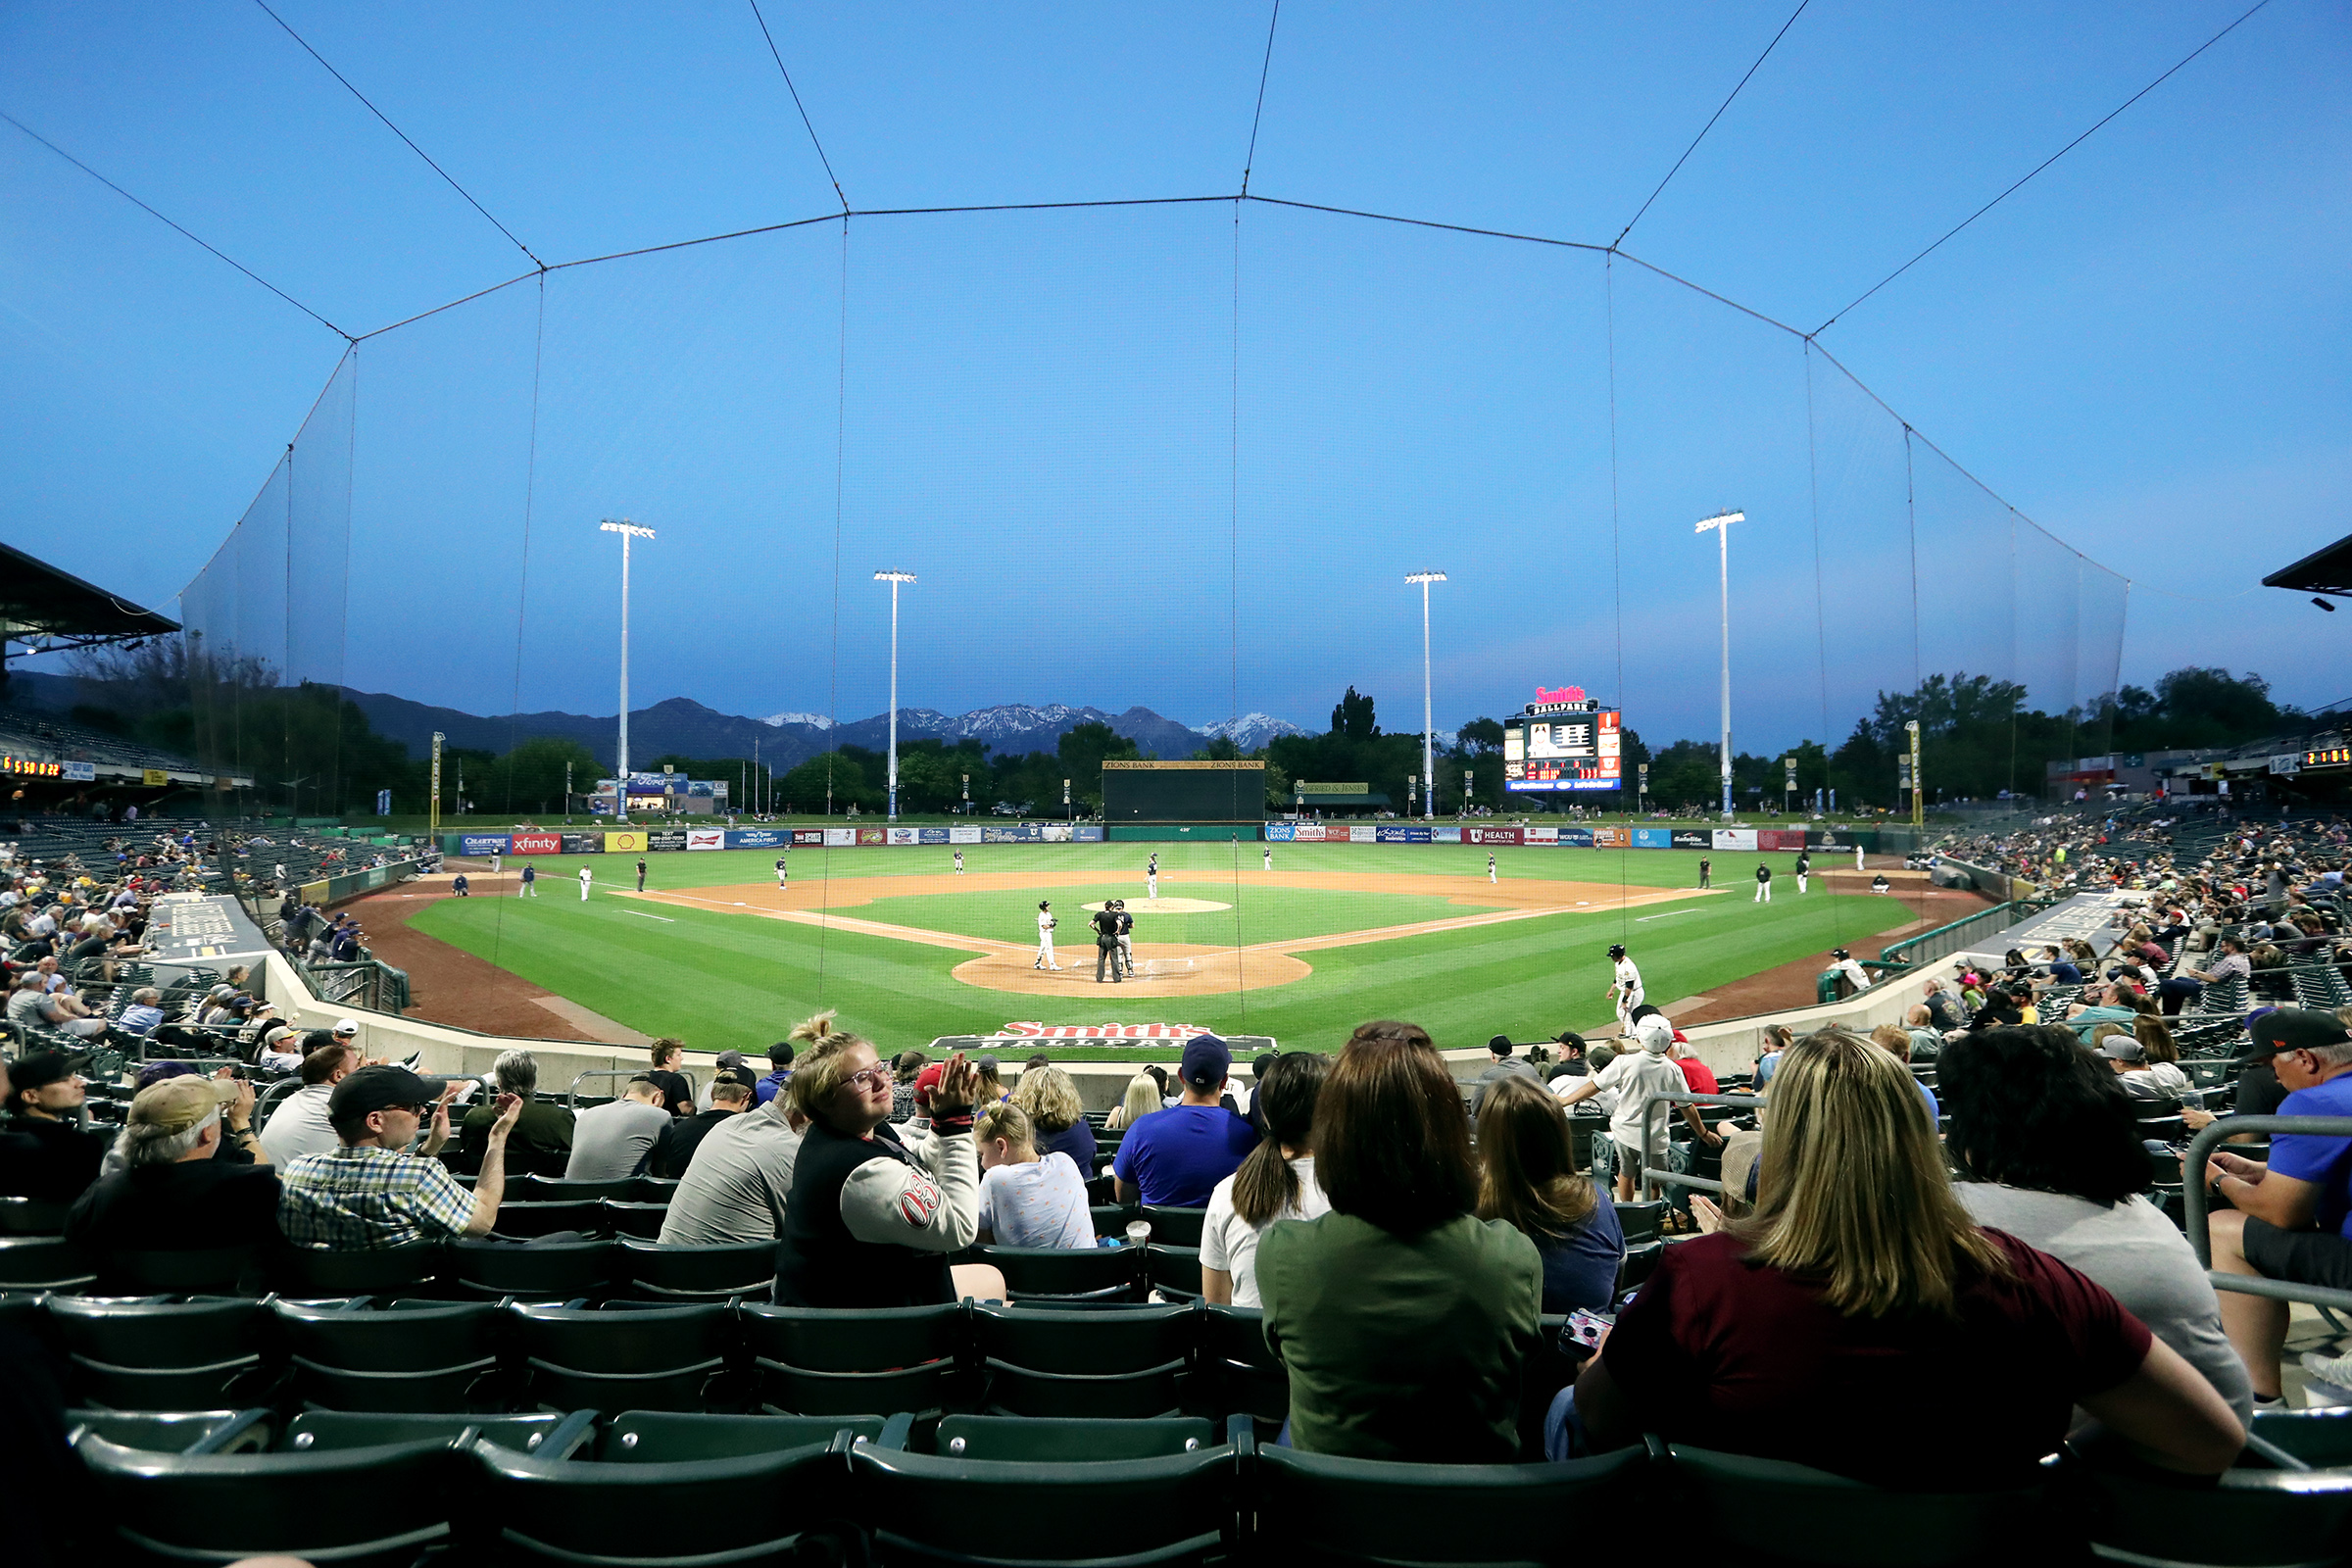 Protective netting helps to keep fans safe as they enjoy a Salt Lake Bees game at Smith's Ballpark in Salt Lake City on Wednesday, June 5, 2019.